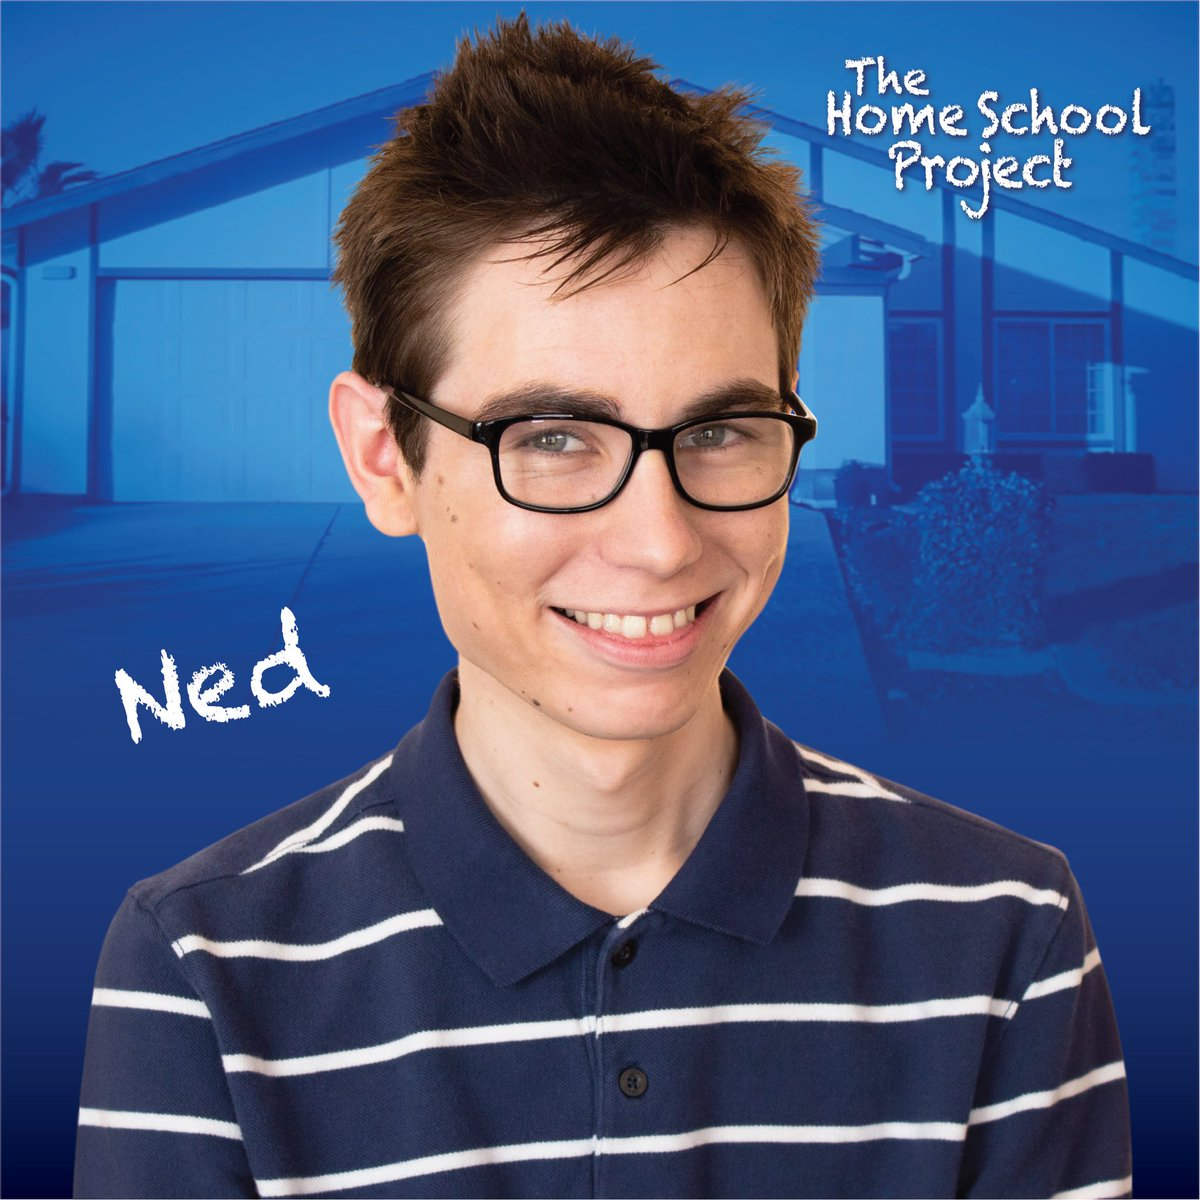 """Character posters for our new series """"The Home School Project"""". Meet Ned, Herbie & Steven Weaver in our first episode. Available for free now on Youtube. https://t.co/up5pZRqZvA  #film #filmmaking #tv #webseries #webseries2020 #comedy #comedyvideo #homeschool #posterdesign https://t.co/b9f05y1ZLg"""